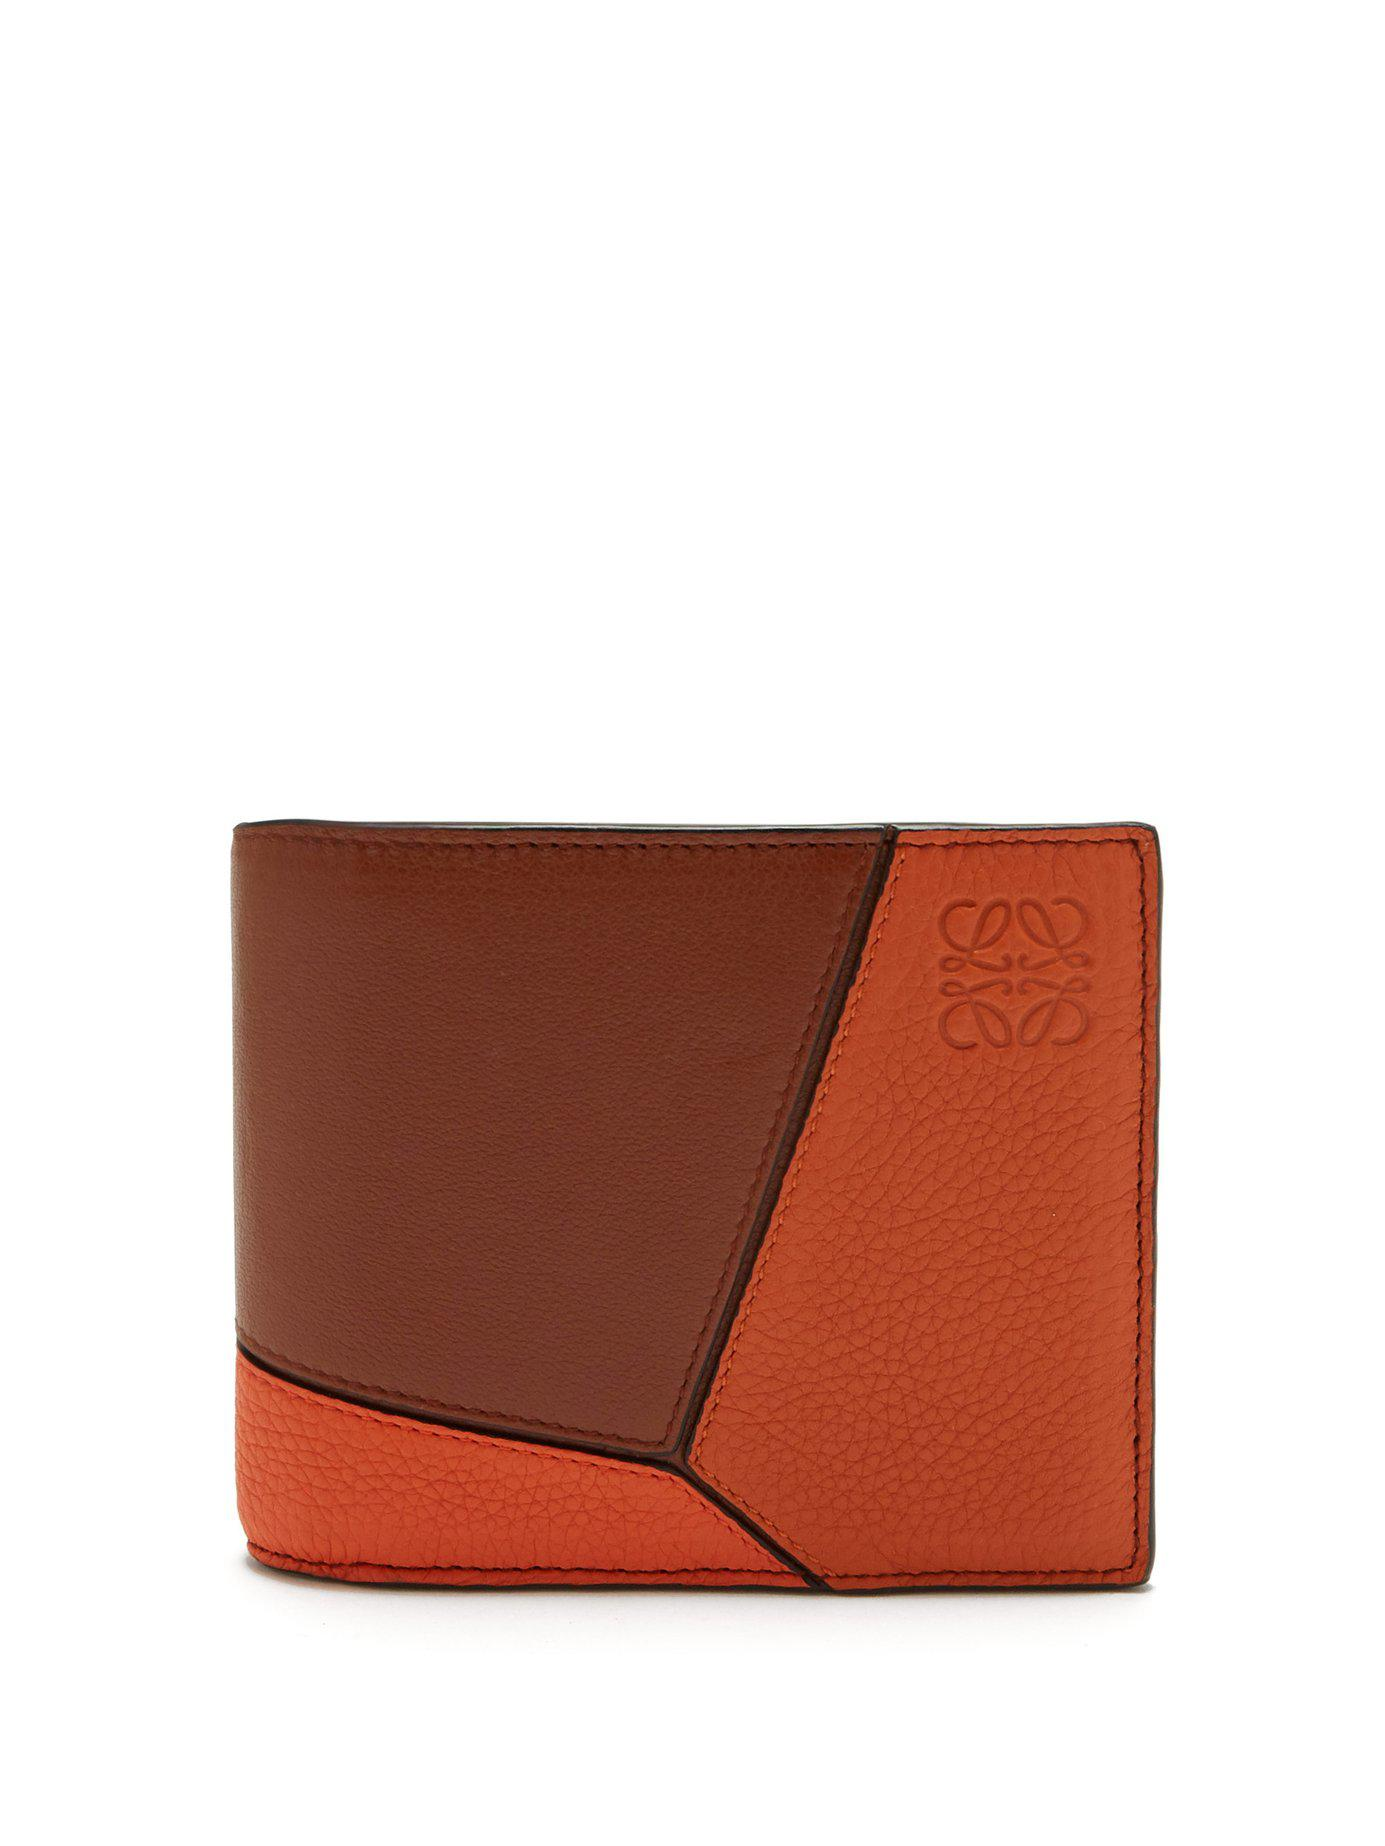 723b1a8755908a Loewe - Multicolor Puzzle Grained Leather Bi Fold Wallet for Men - Lyst.  View fullscreen